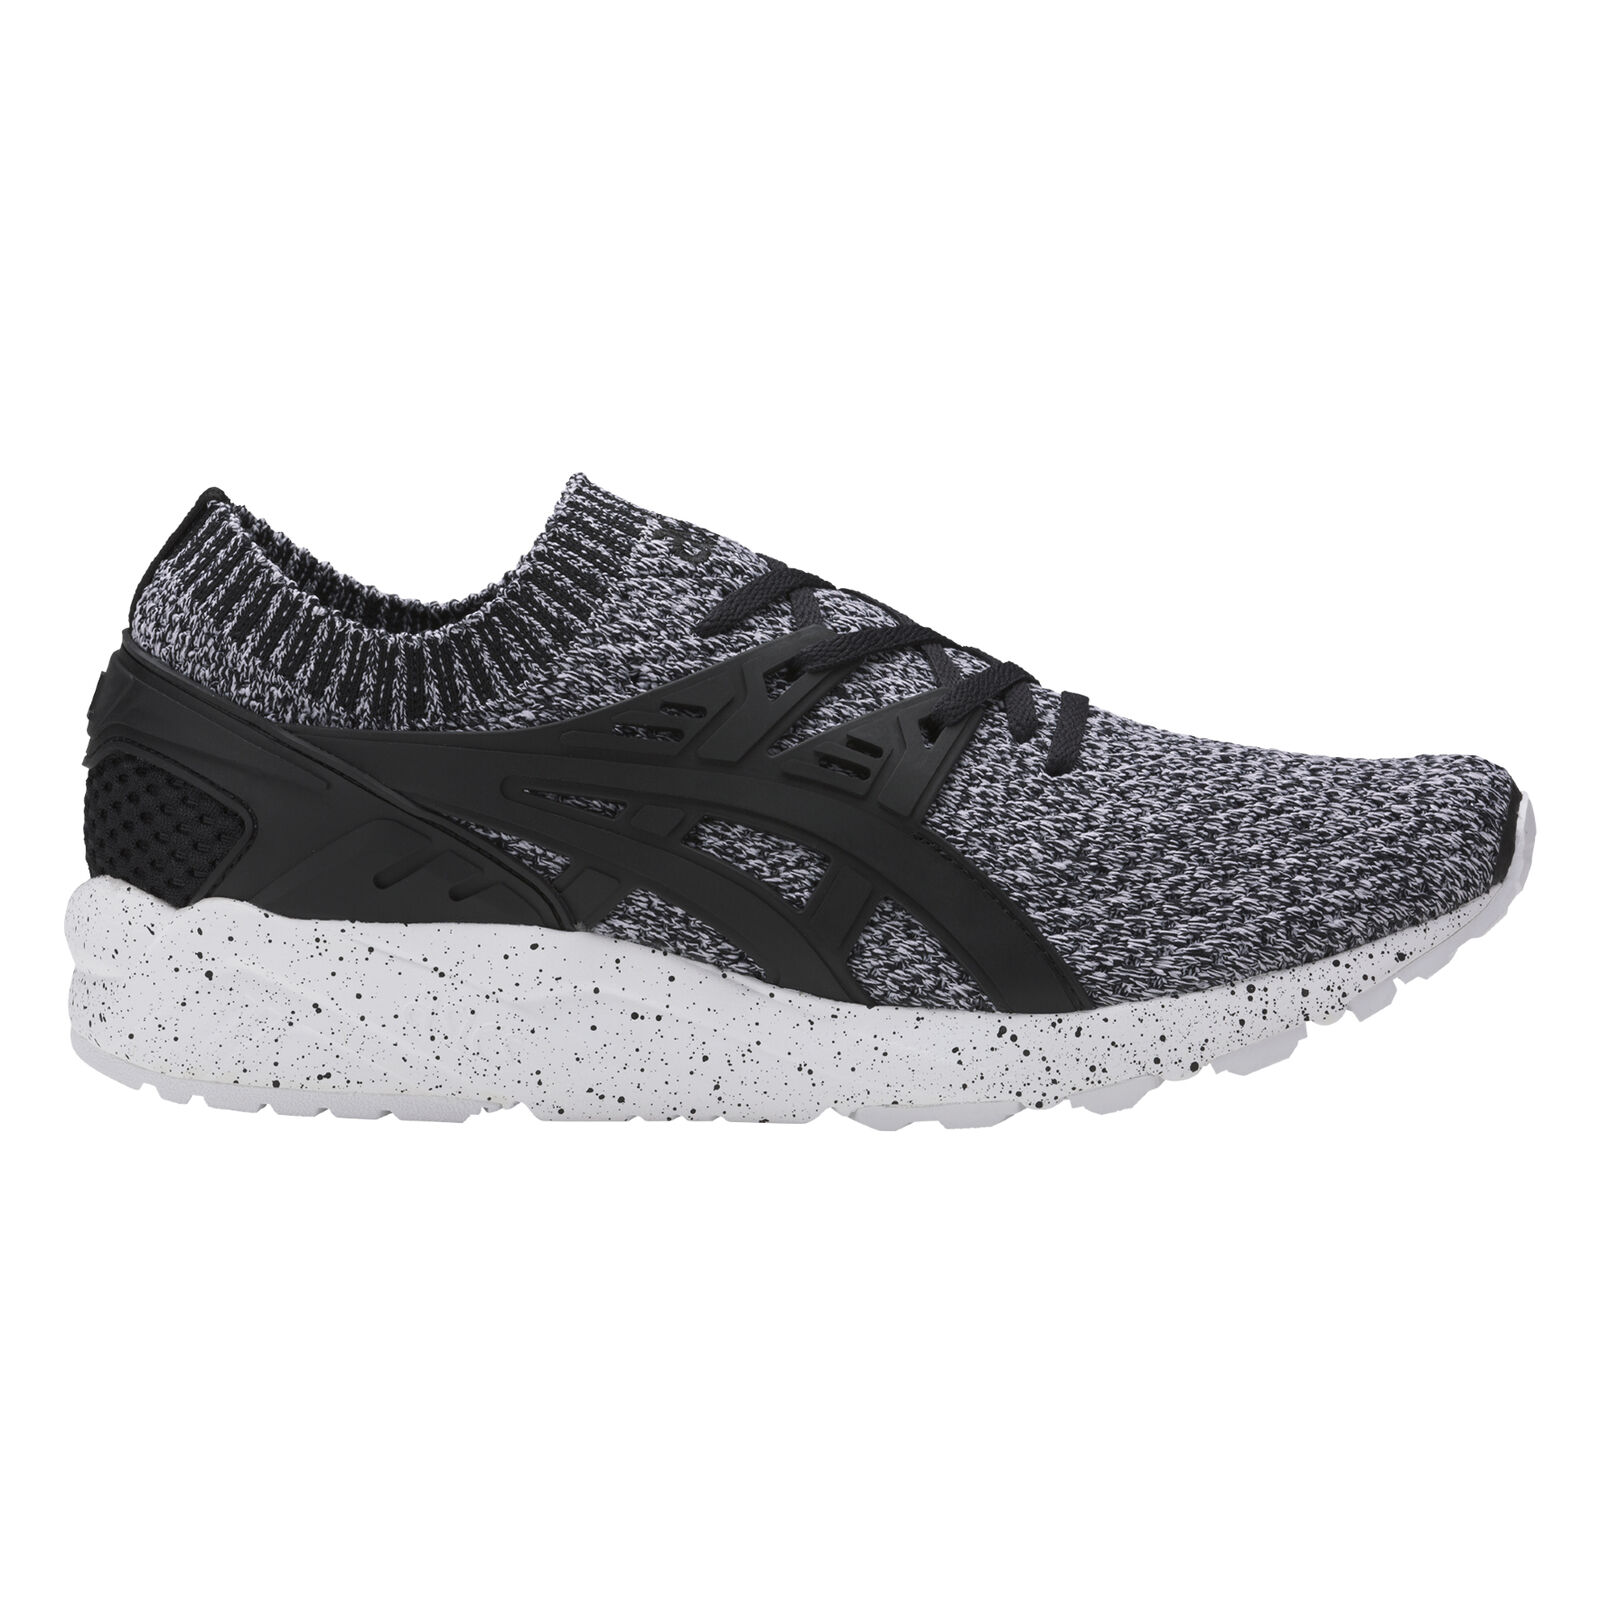 Asics Gel-Kayano Trainer Knit - Art.Nr. HN7Q2-0190